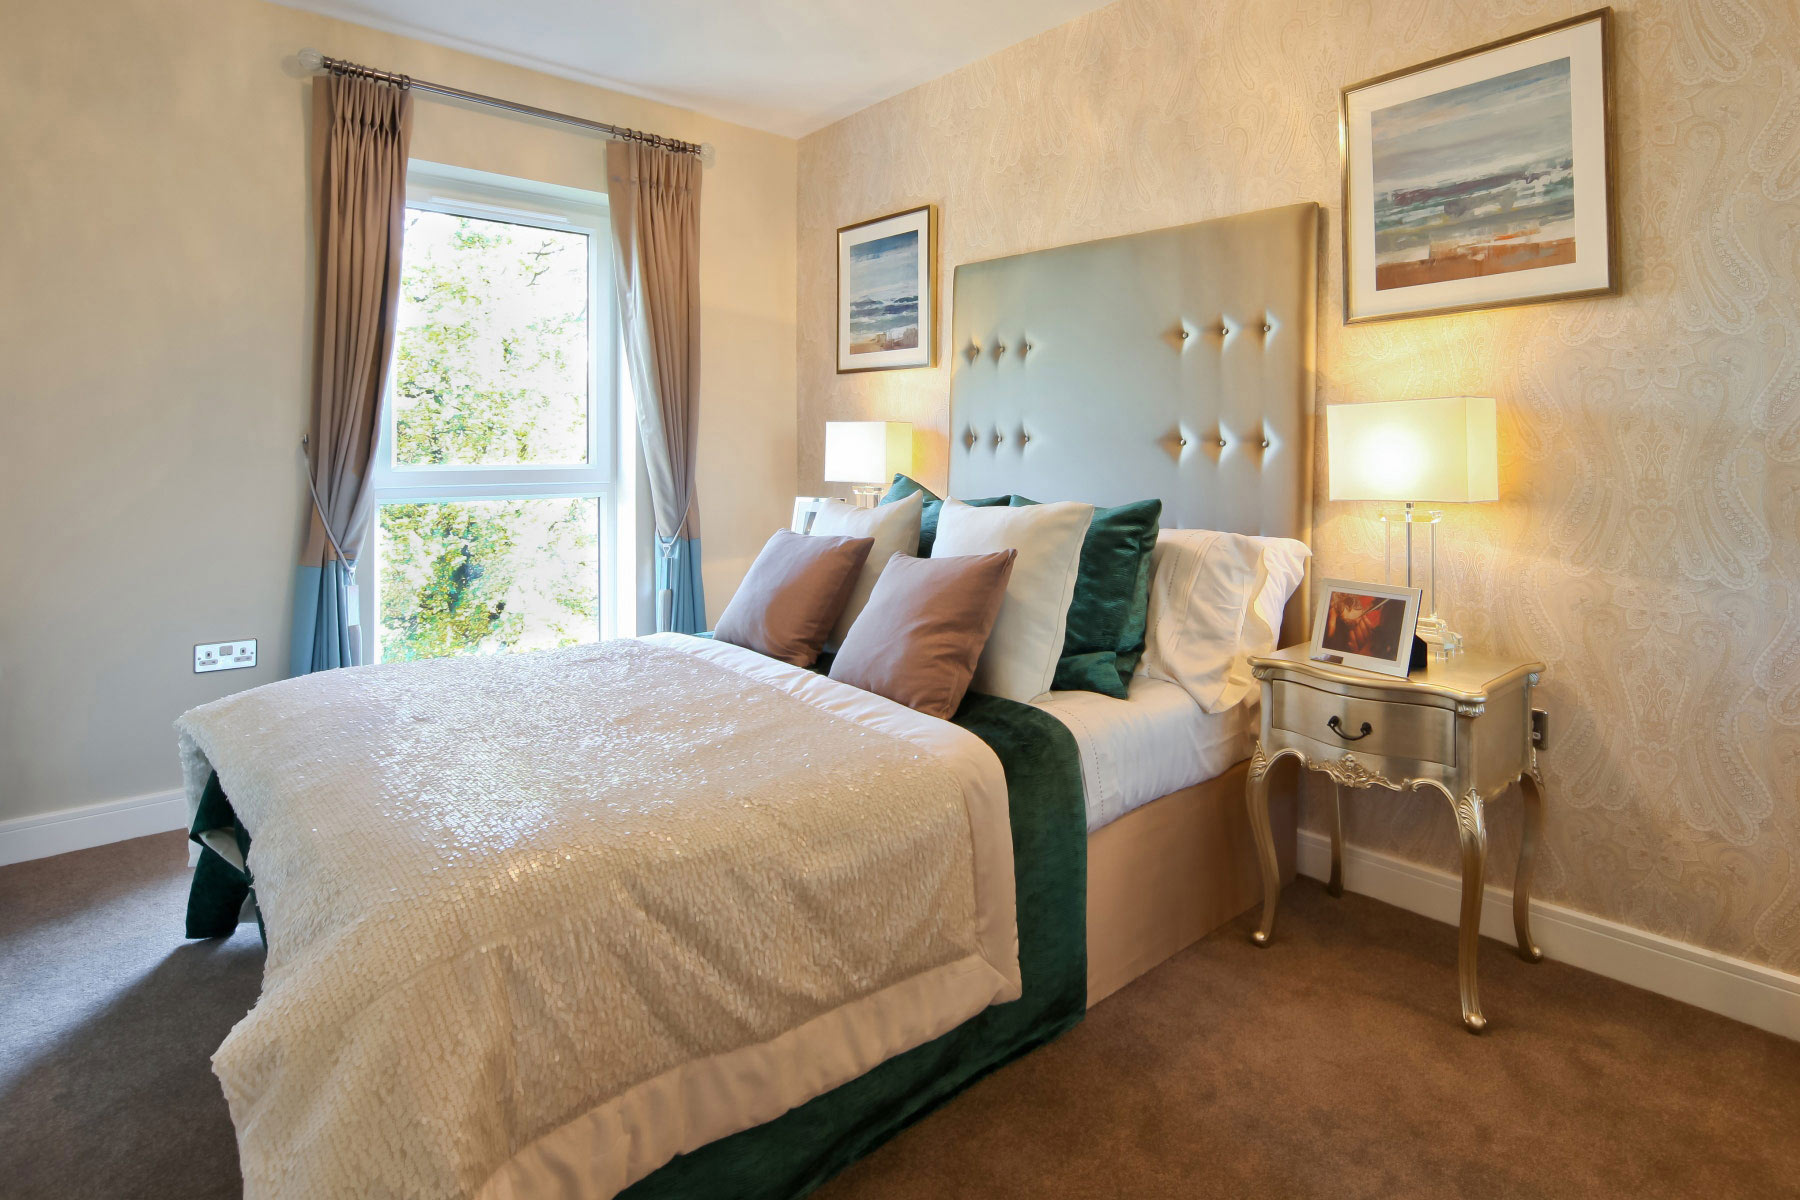 Taylor Wimpey Typical Bedroom-2